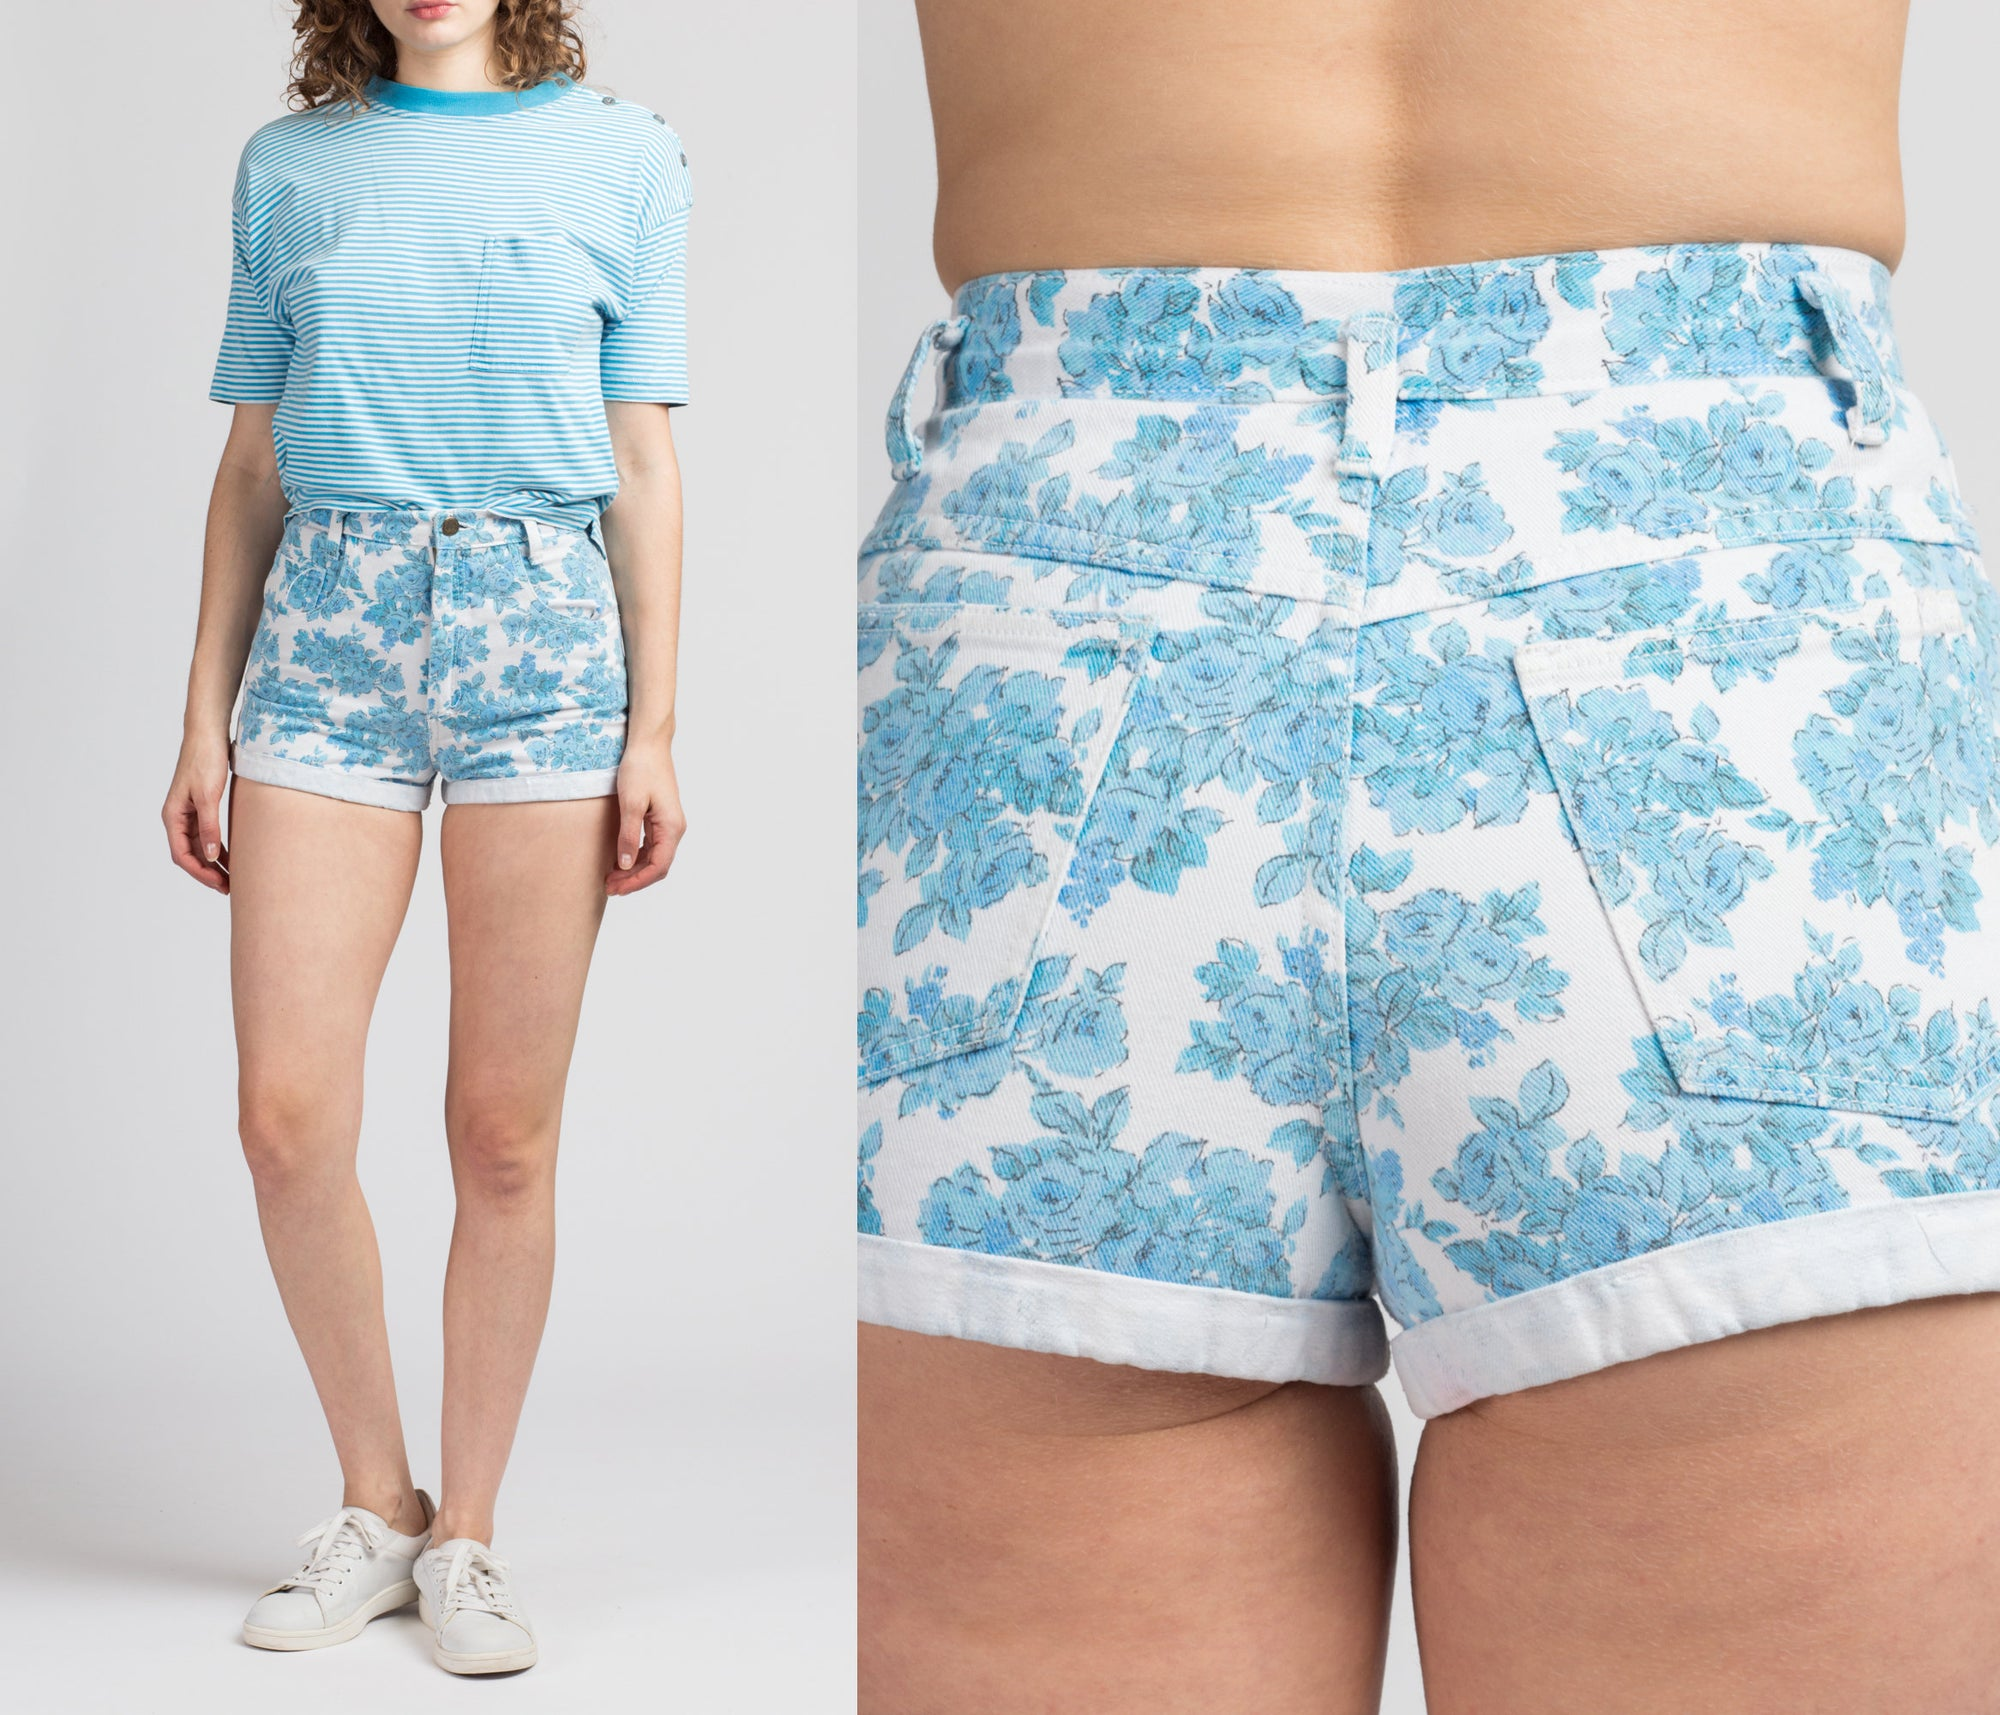 Vintage Contempo Casuals Floral Booty Shorts - Small, 26.5""